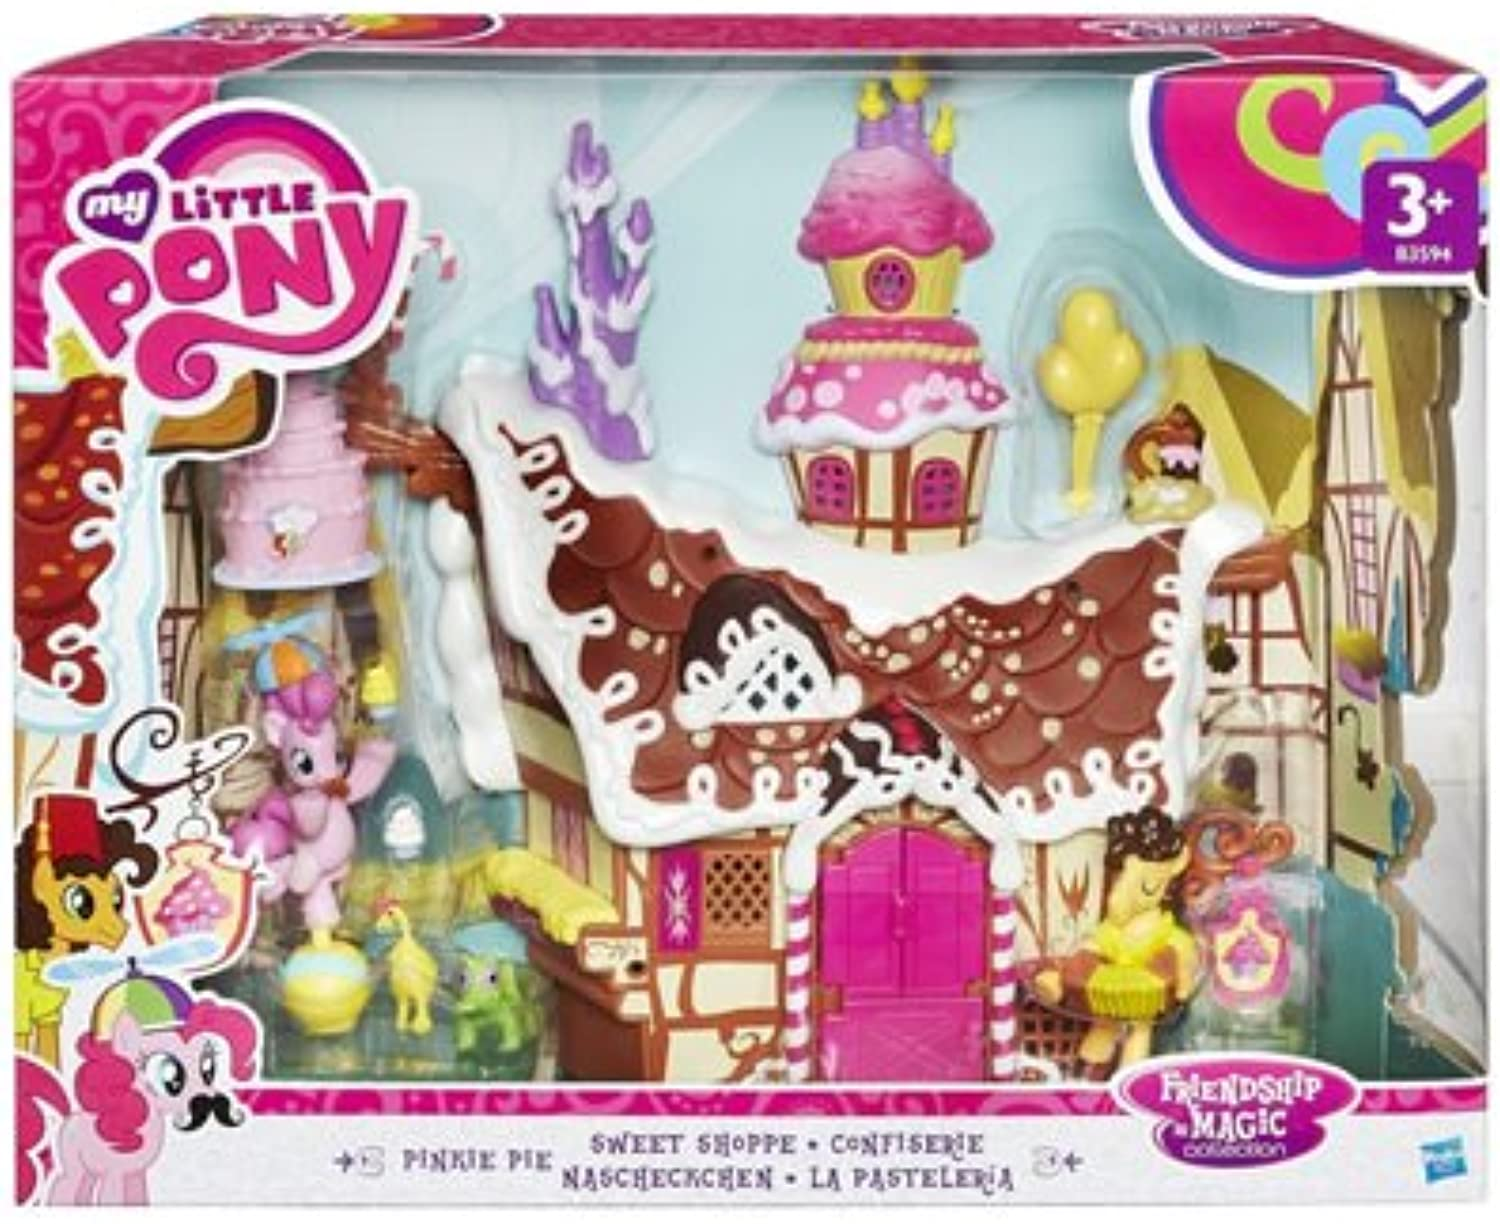 MY LITTLE PONY Friendship Is Magic Collection Pinkie Pie Sweet Shoppe Playset (Multi-Colour) by Hasbro